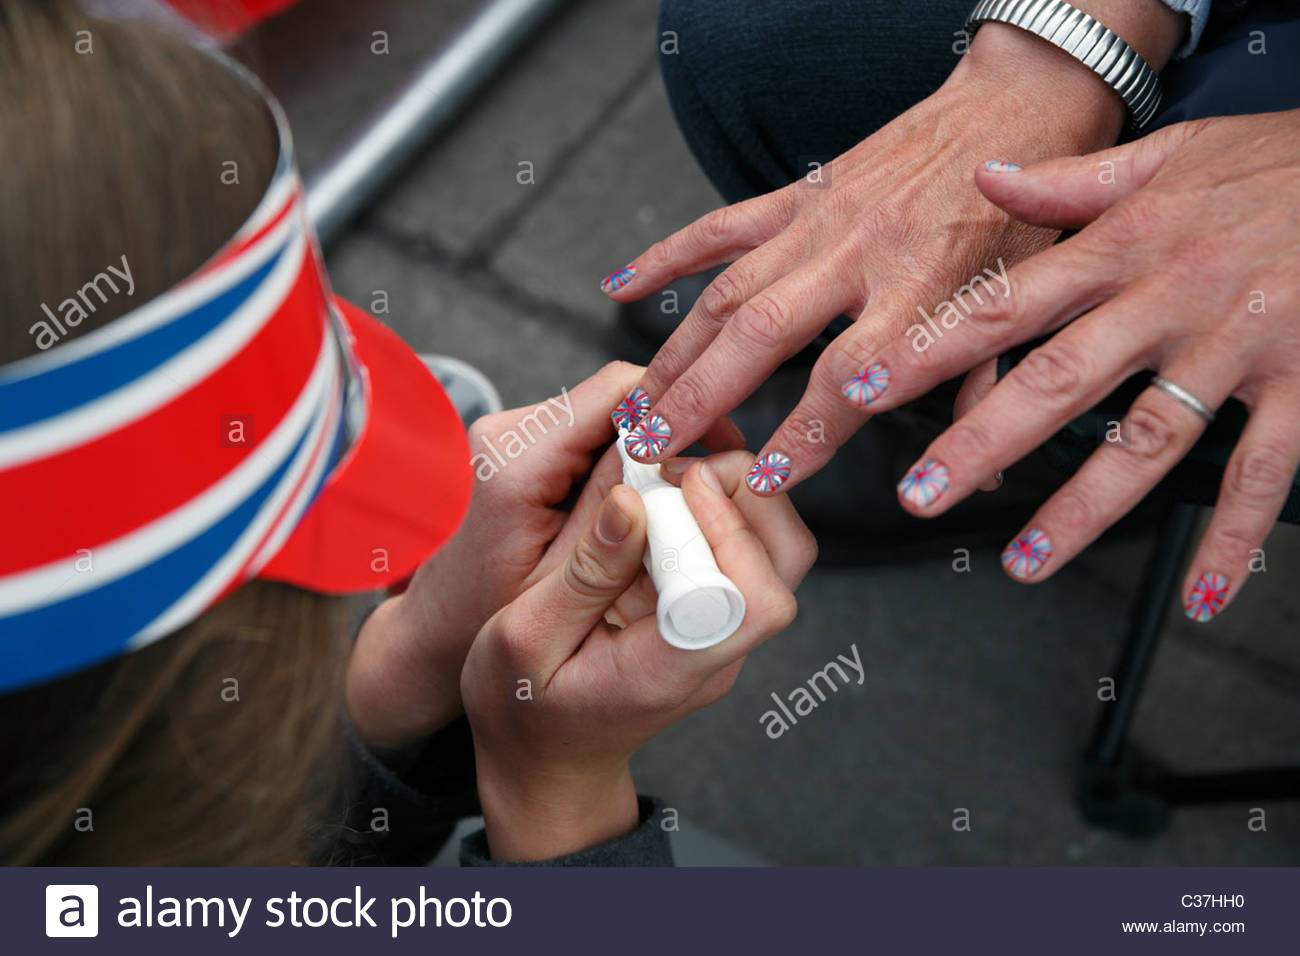 A woman paints her friend's nails with Union Jack flags for the Royal Wedding of Prince William and Kate Middleton - Stock Image